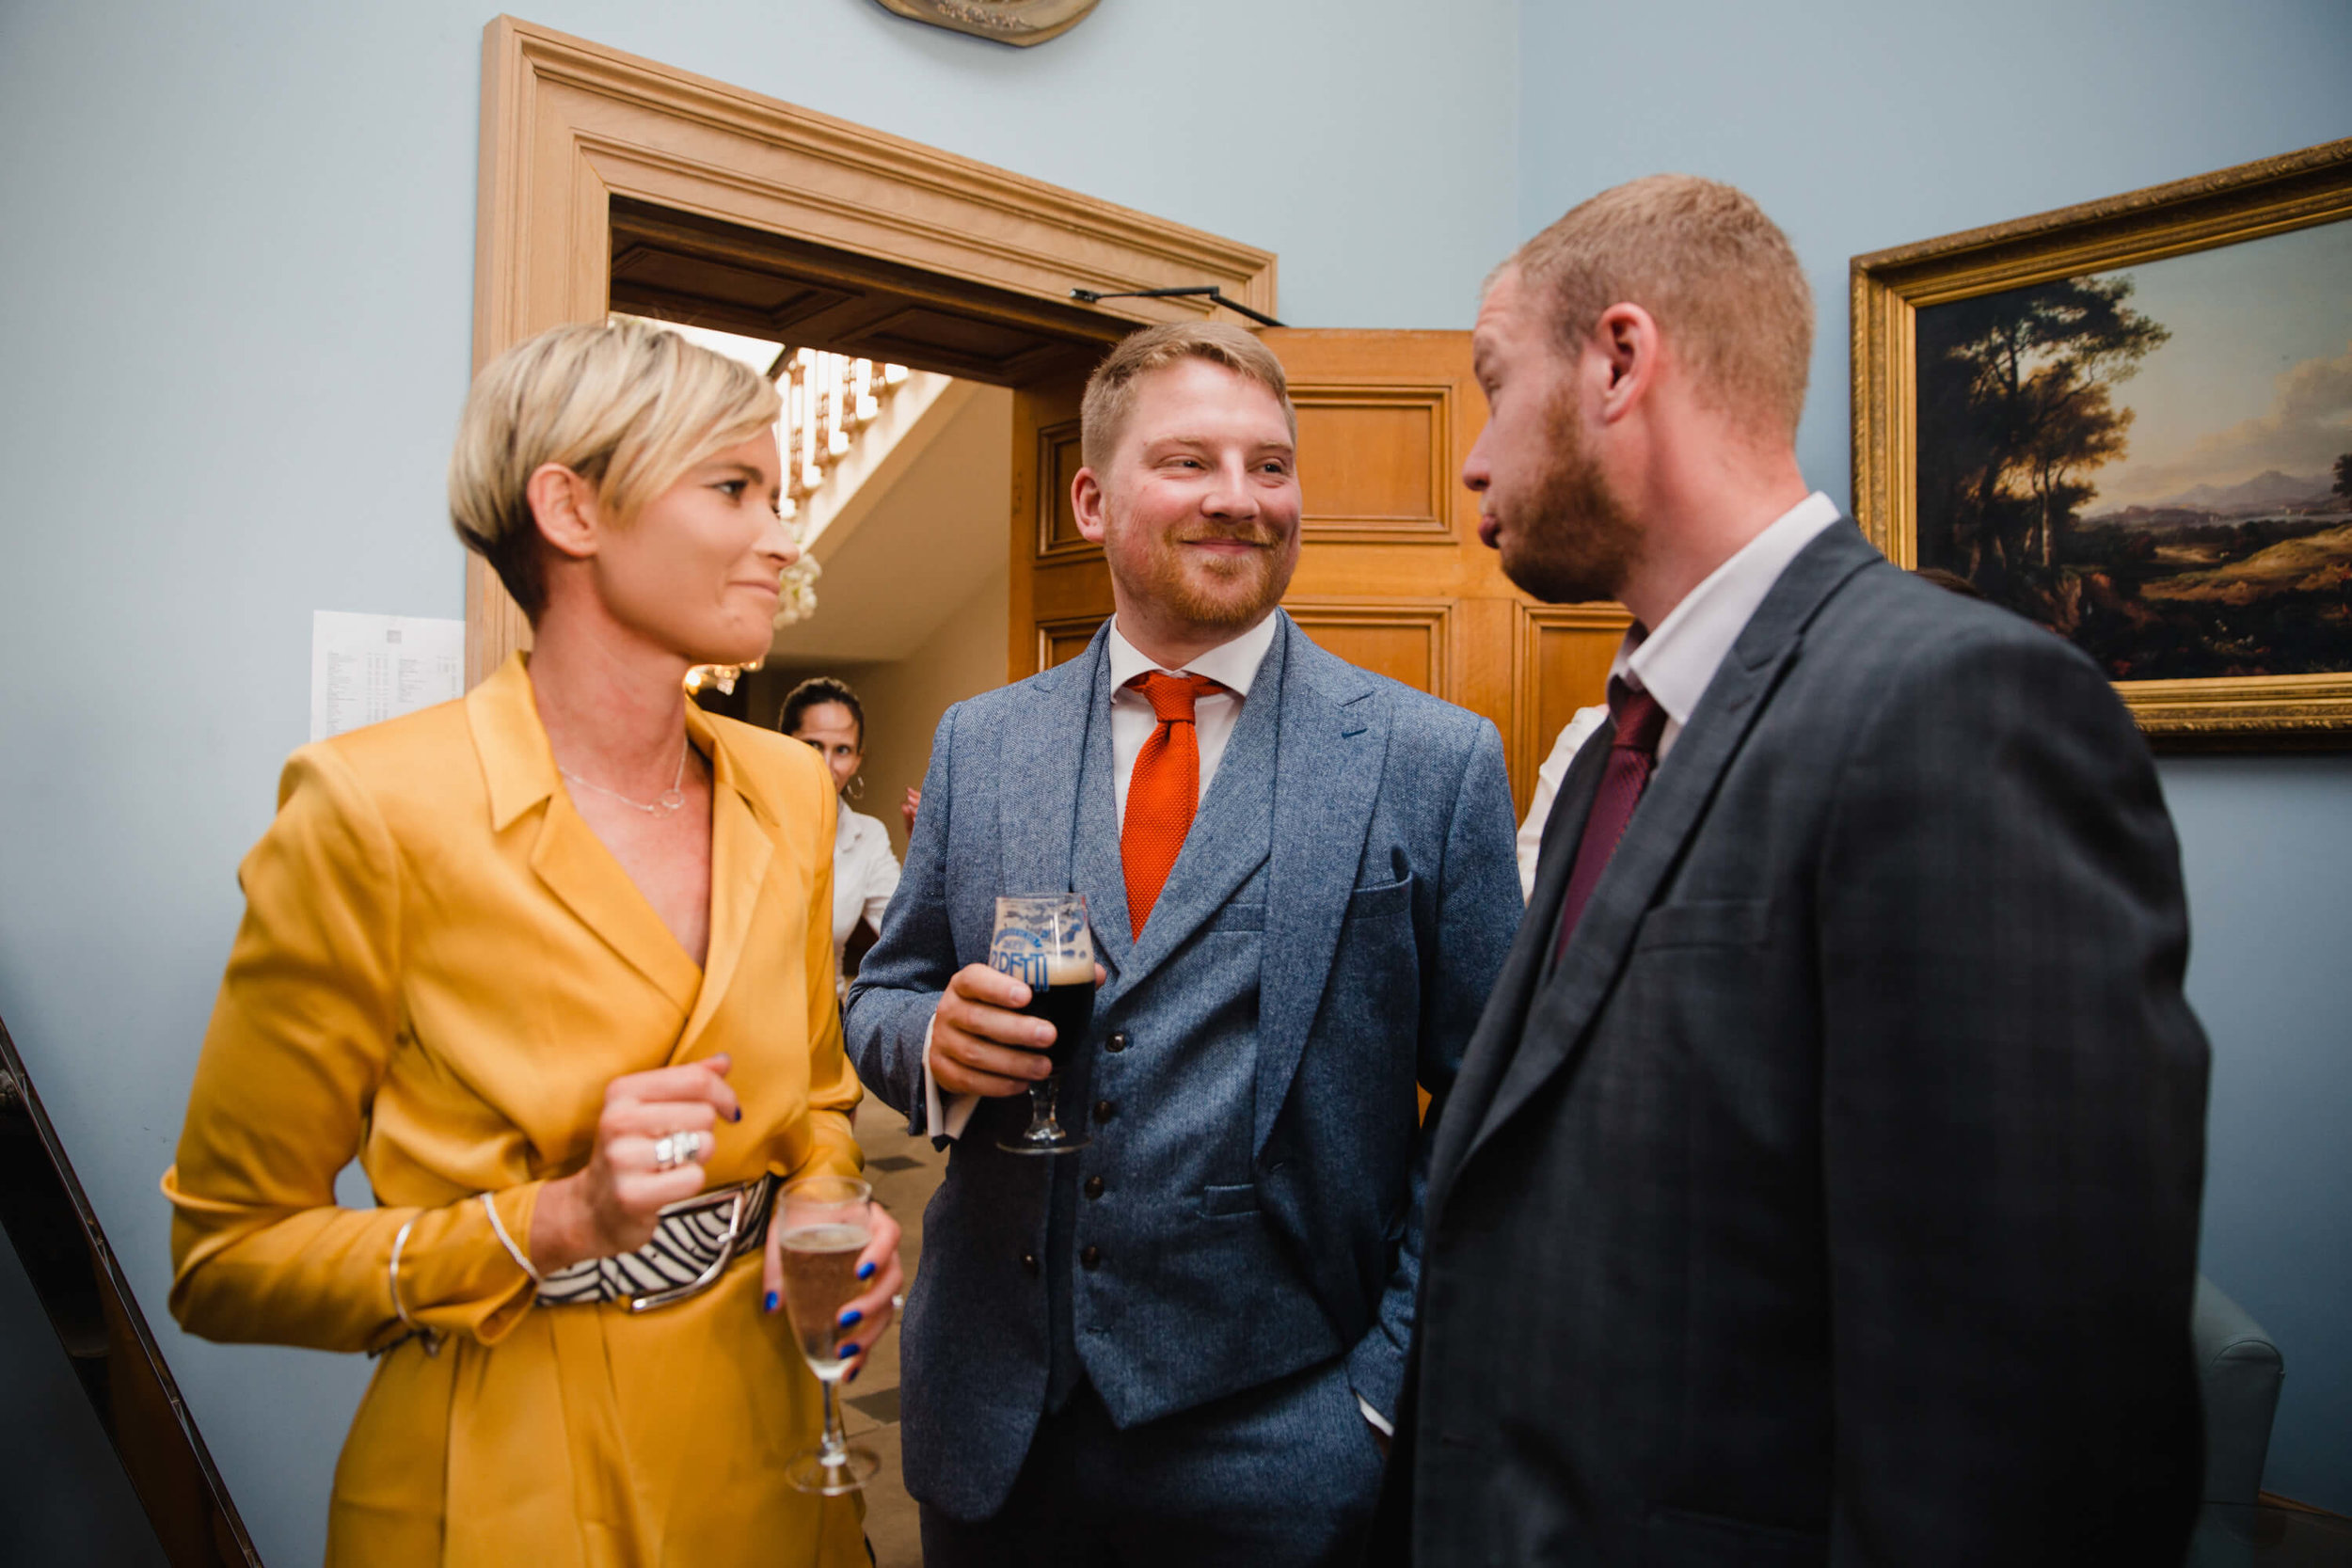 wedding guests enjoying drinks together at haigh hall